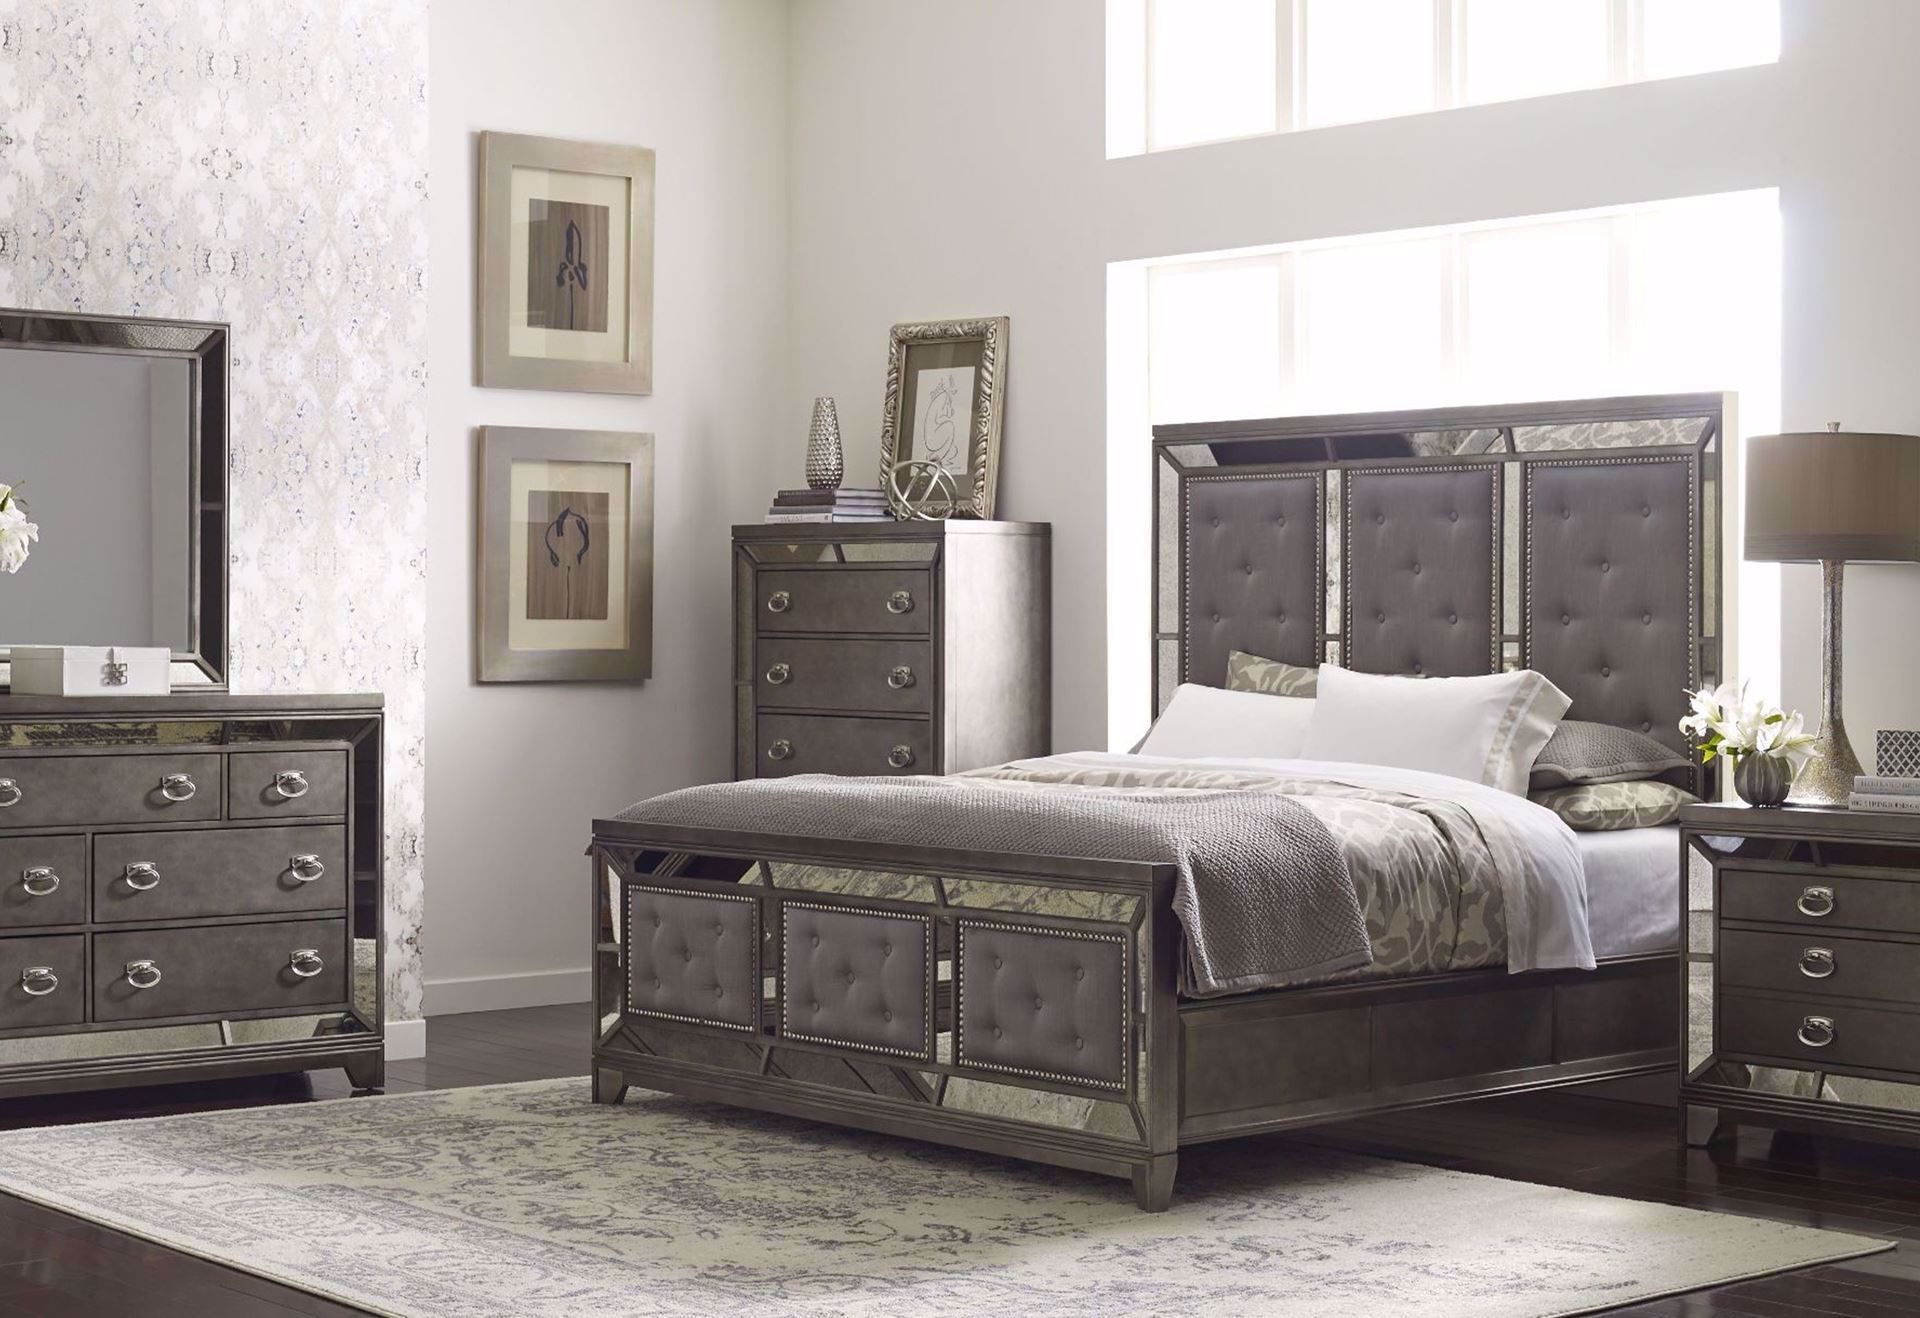 Find More Bedroom Sets Information About Russian Style Red Solid